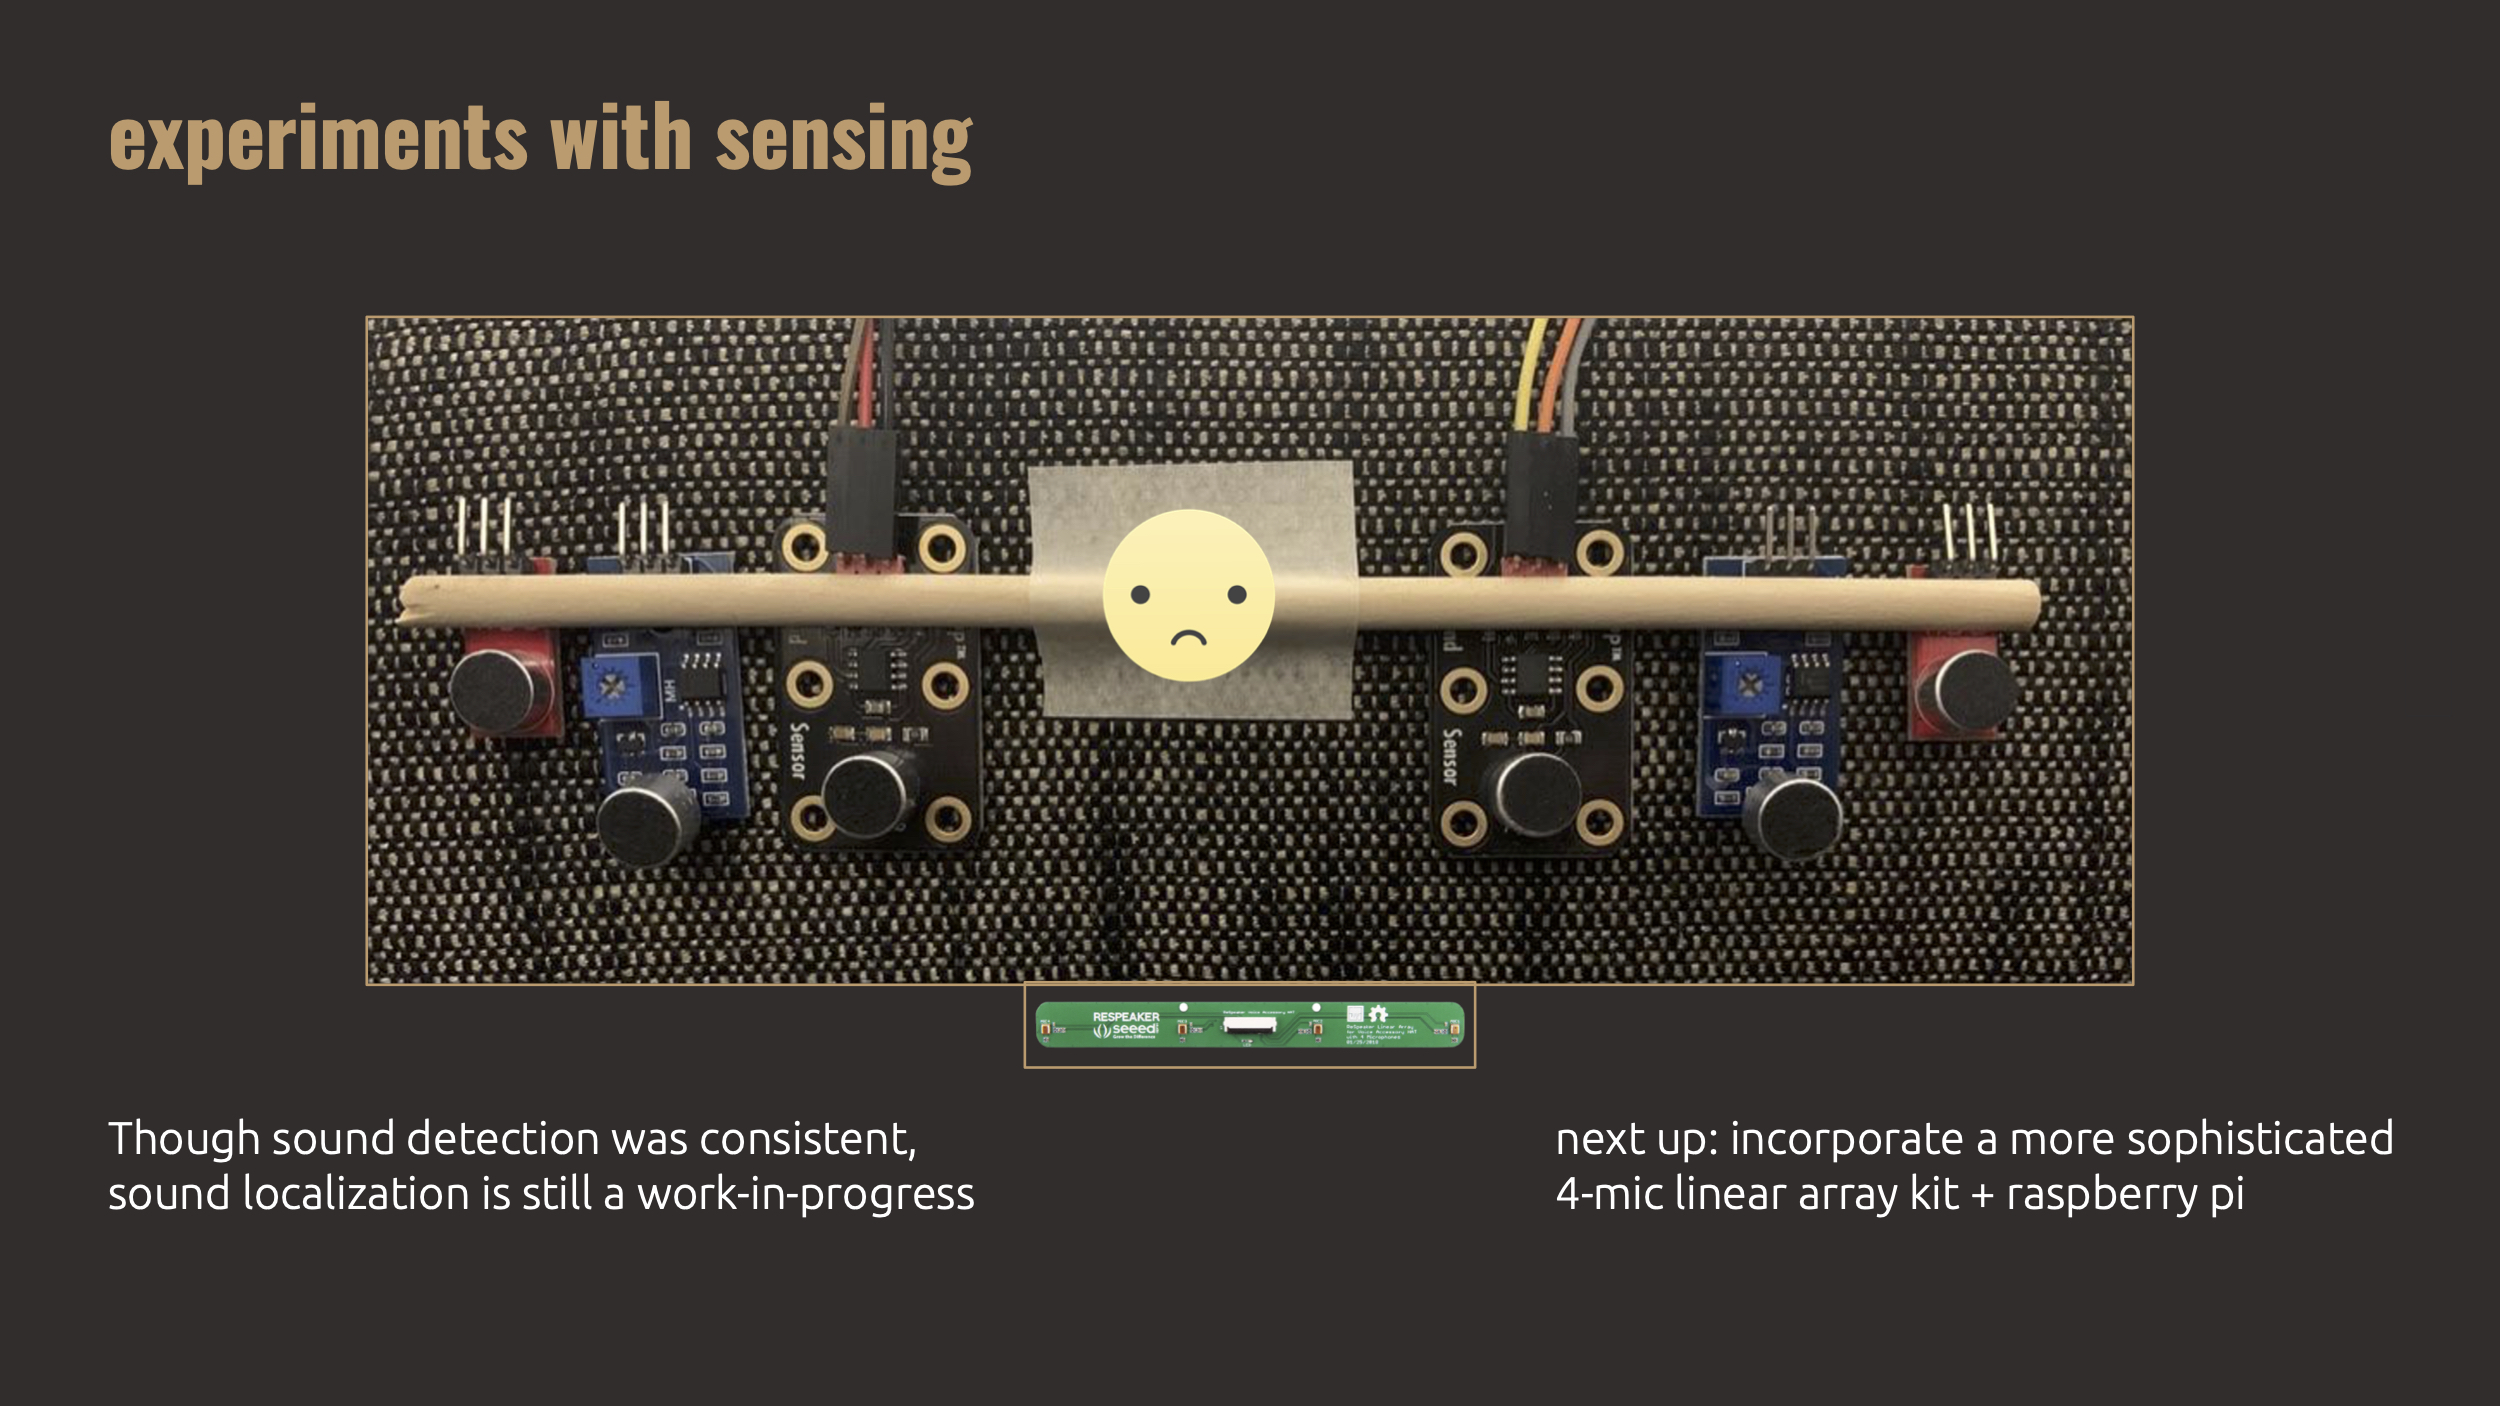 5_resonance_sensing